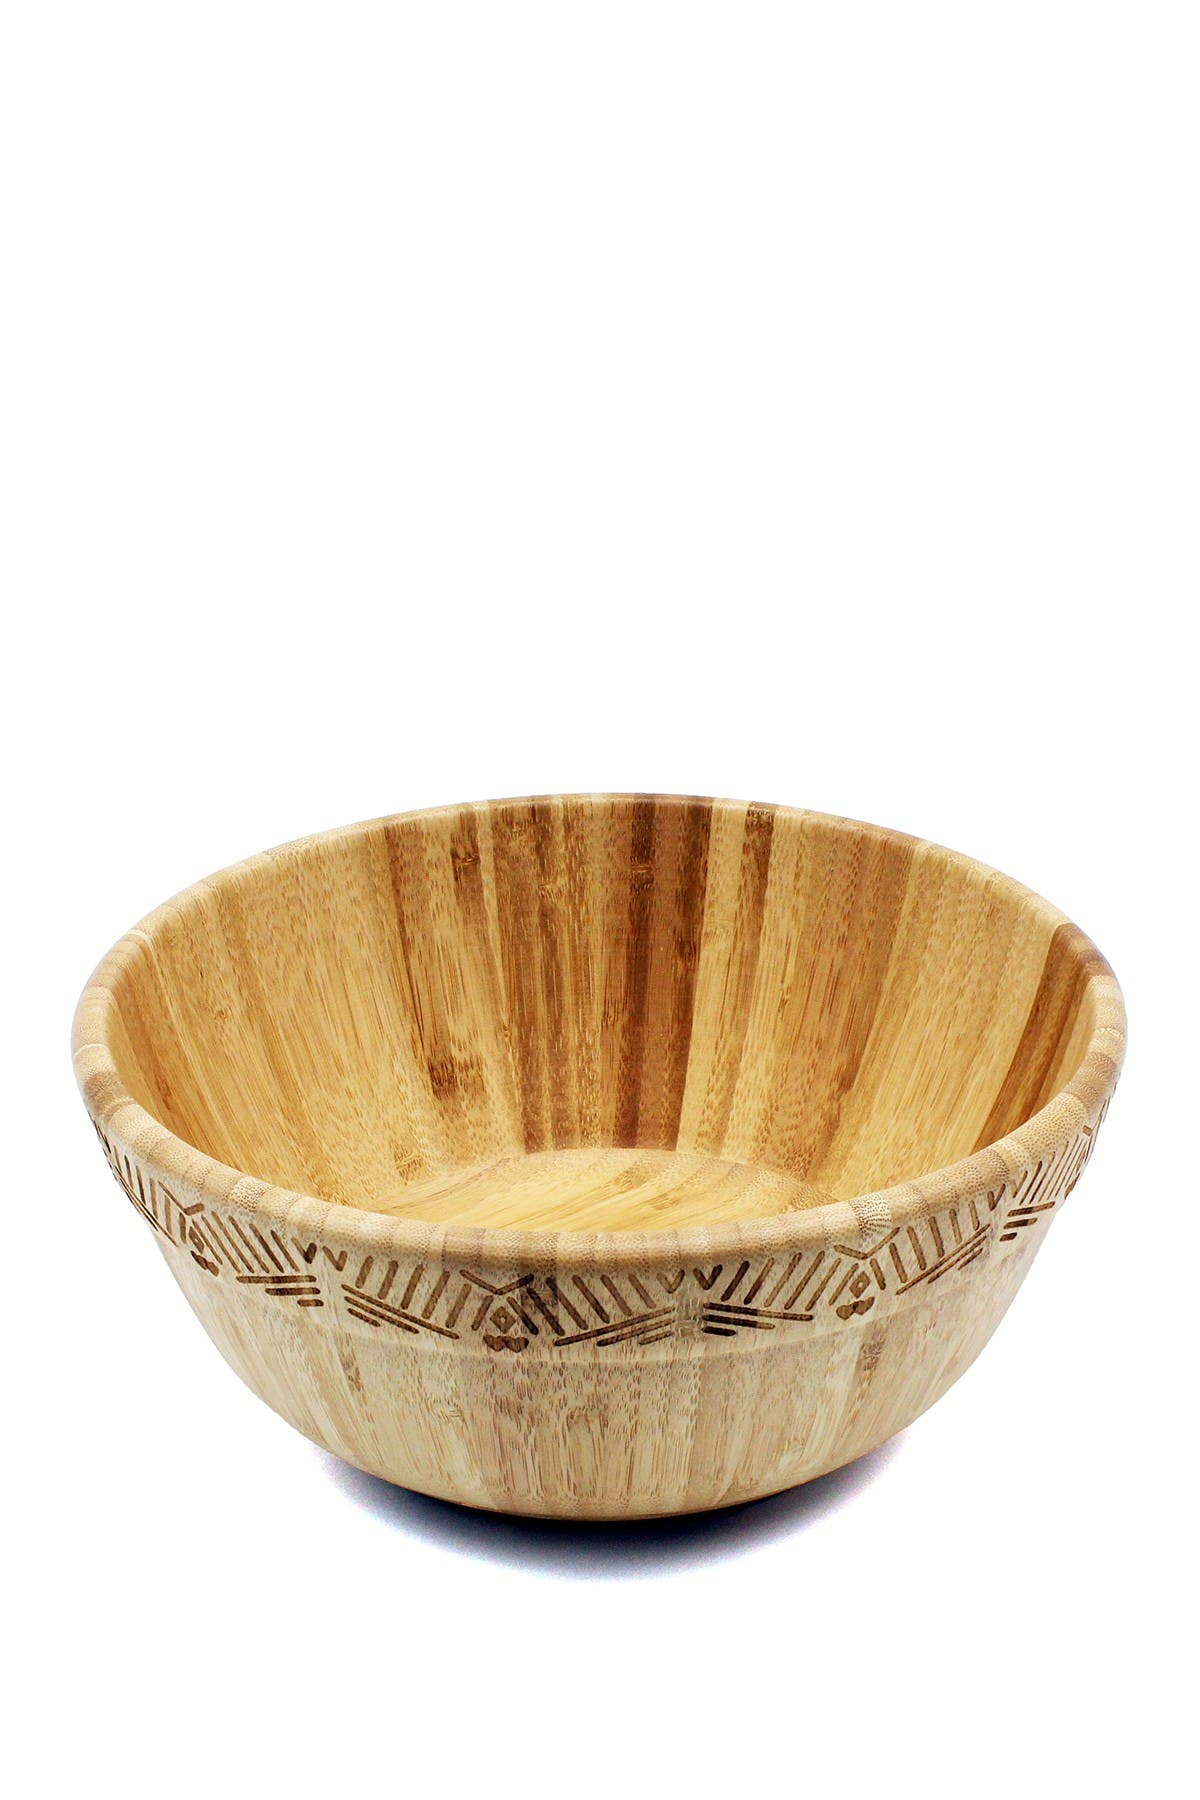 Image of BergHOFF Bamboo Decorated Salad Bowl